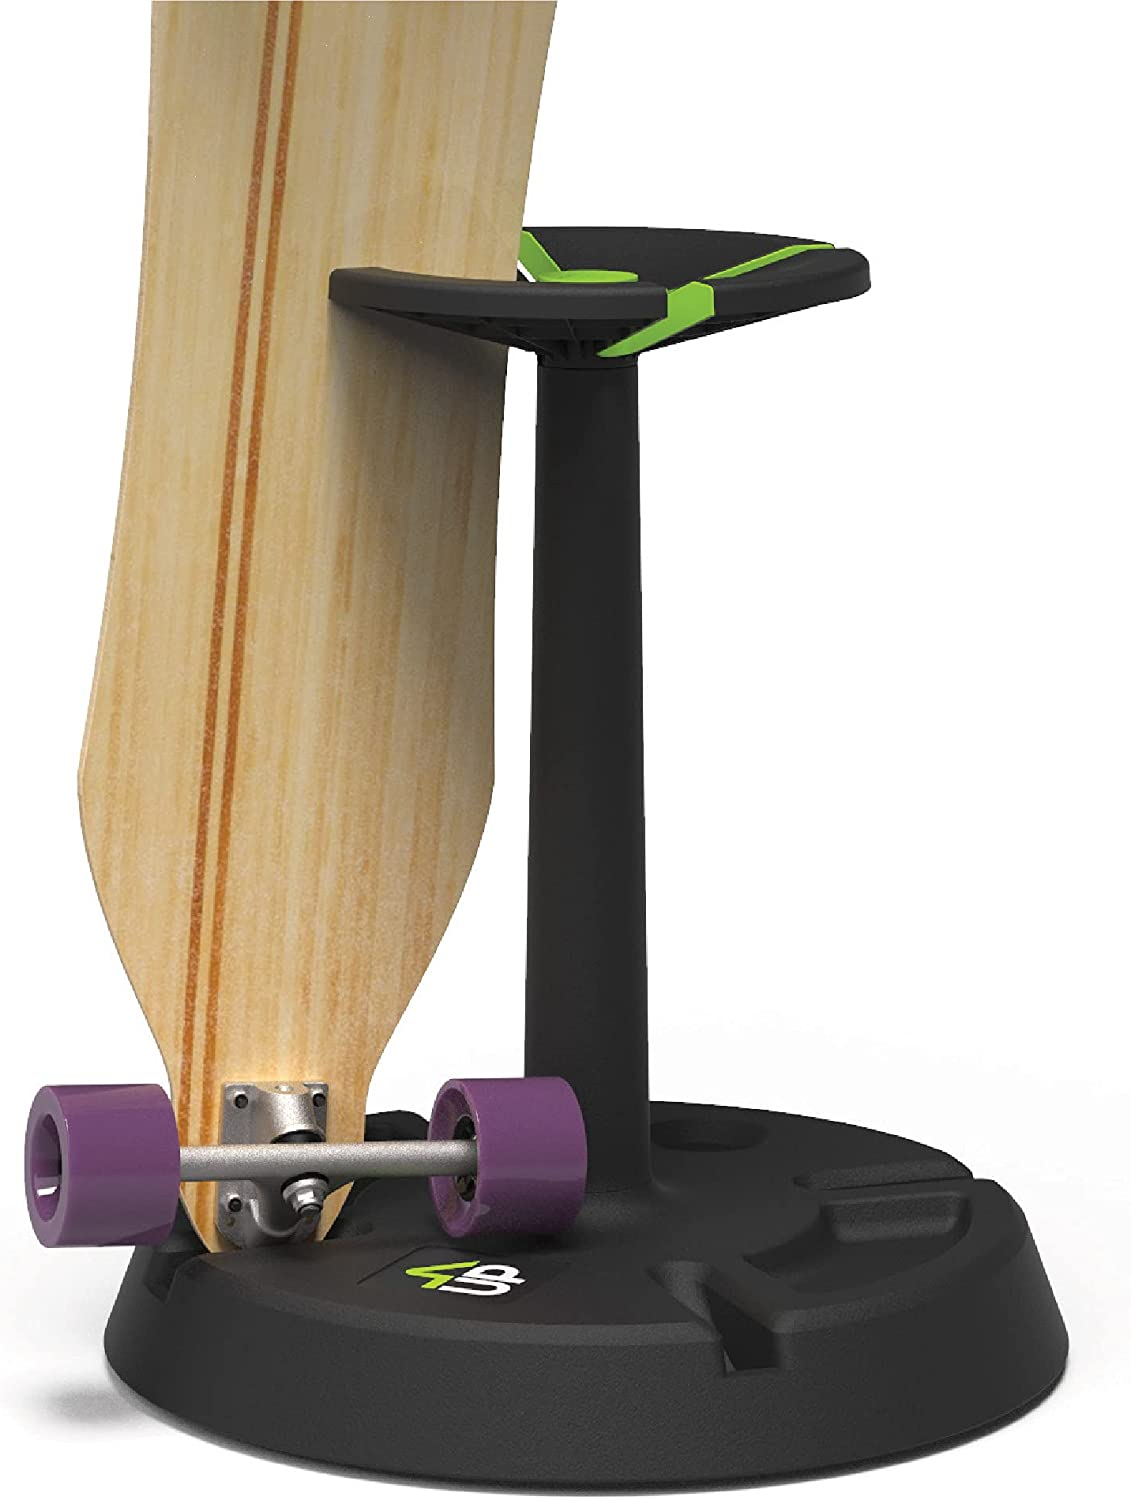 Parking Block Rotary Turntable 4-Up Skateboard wholesale Stand Display - Raleigh Mall 4